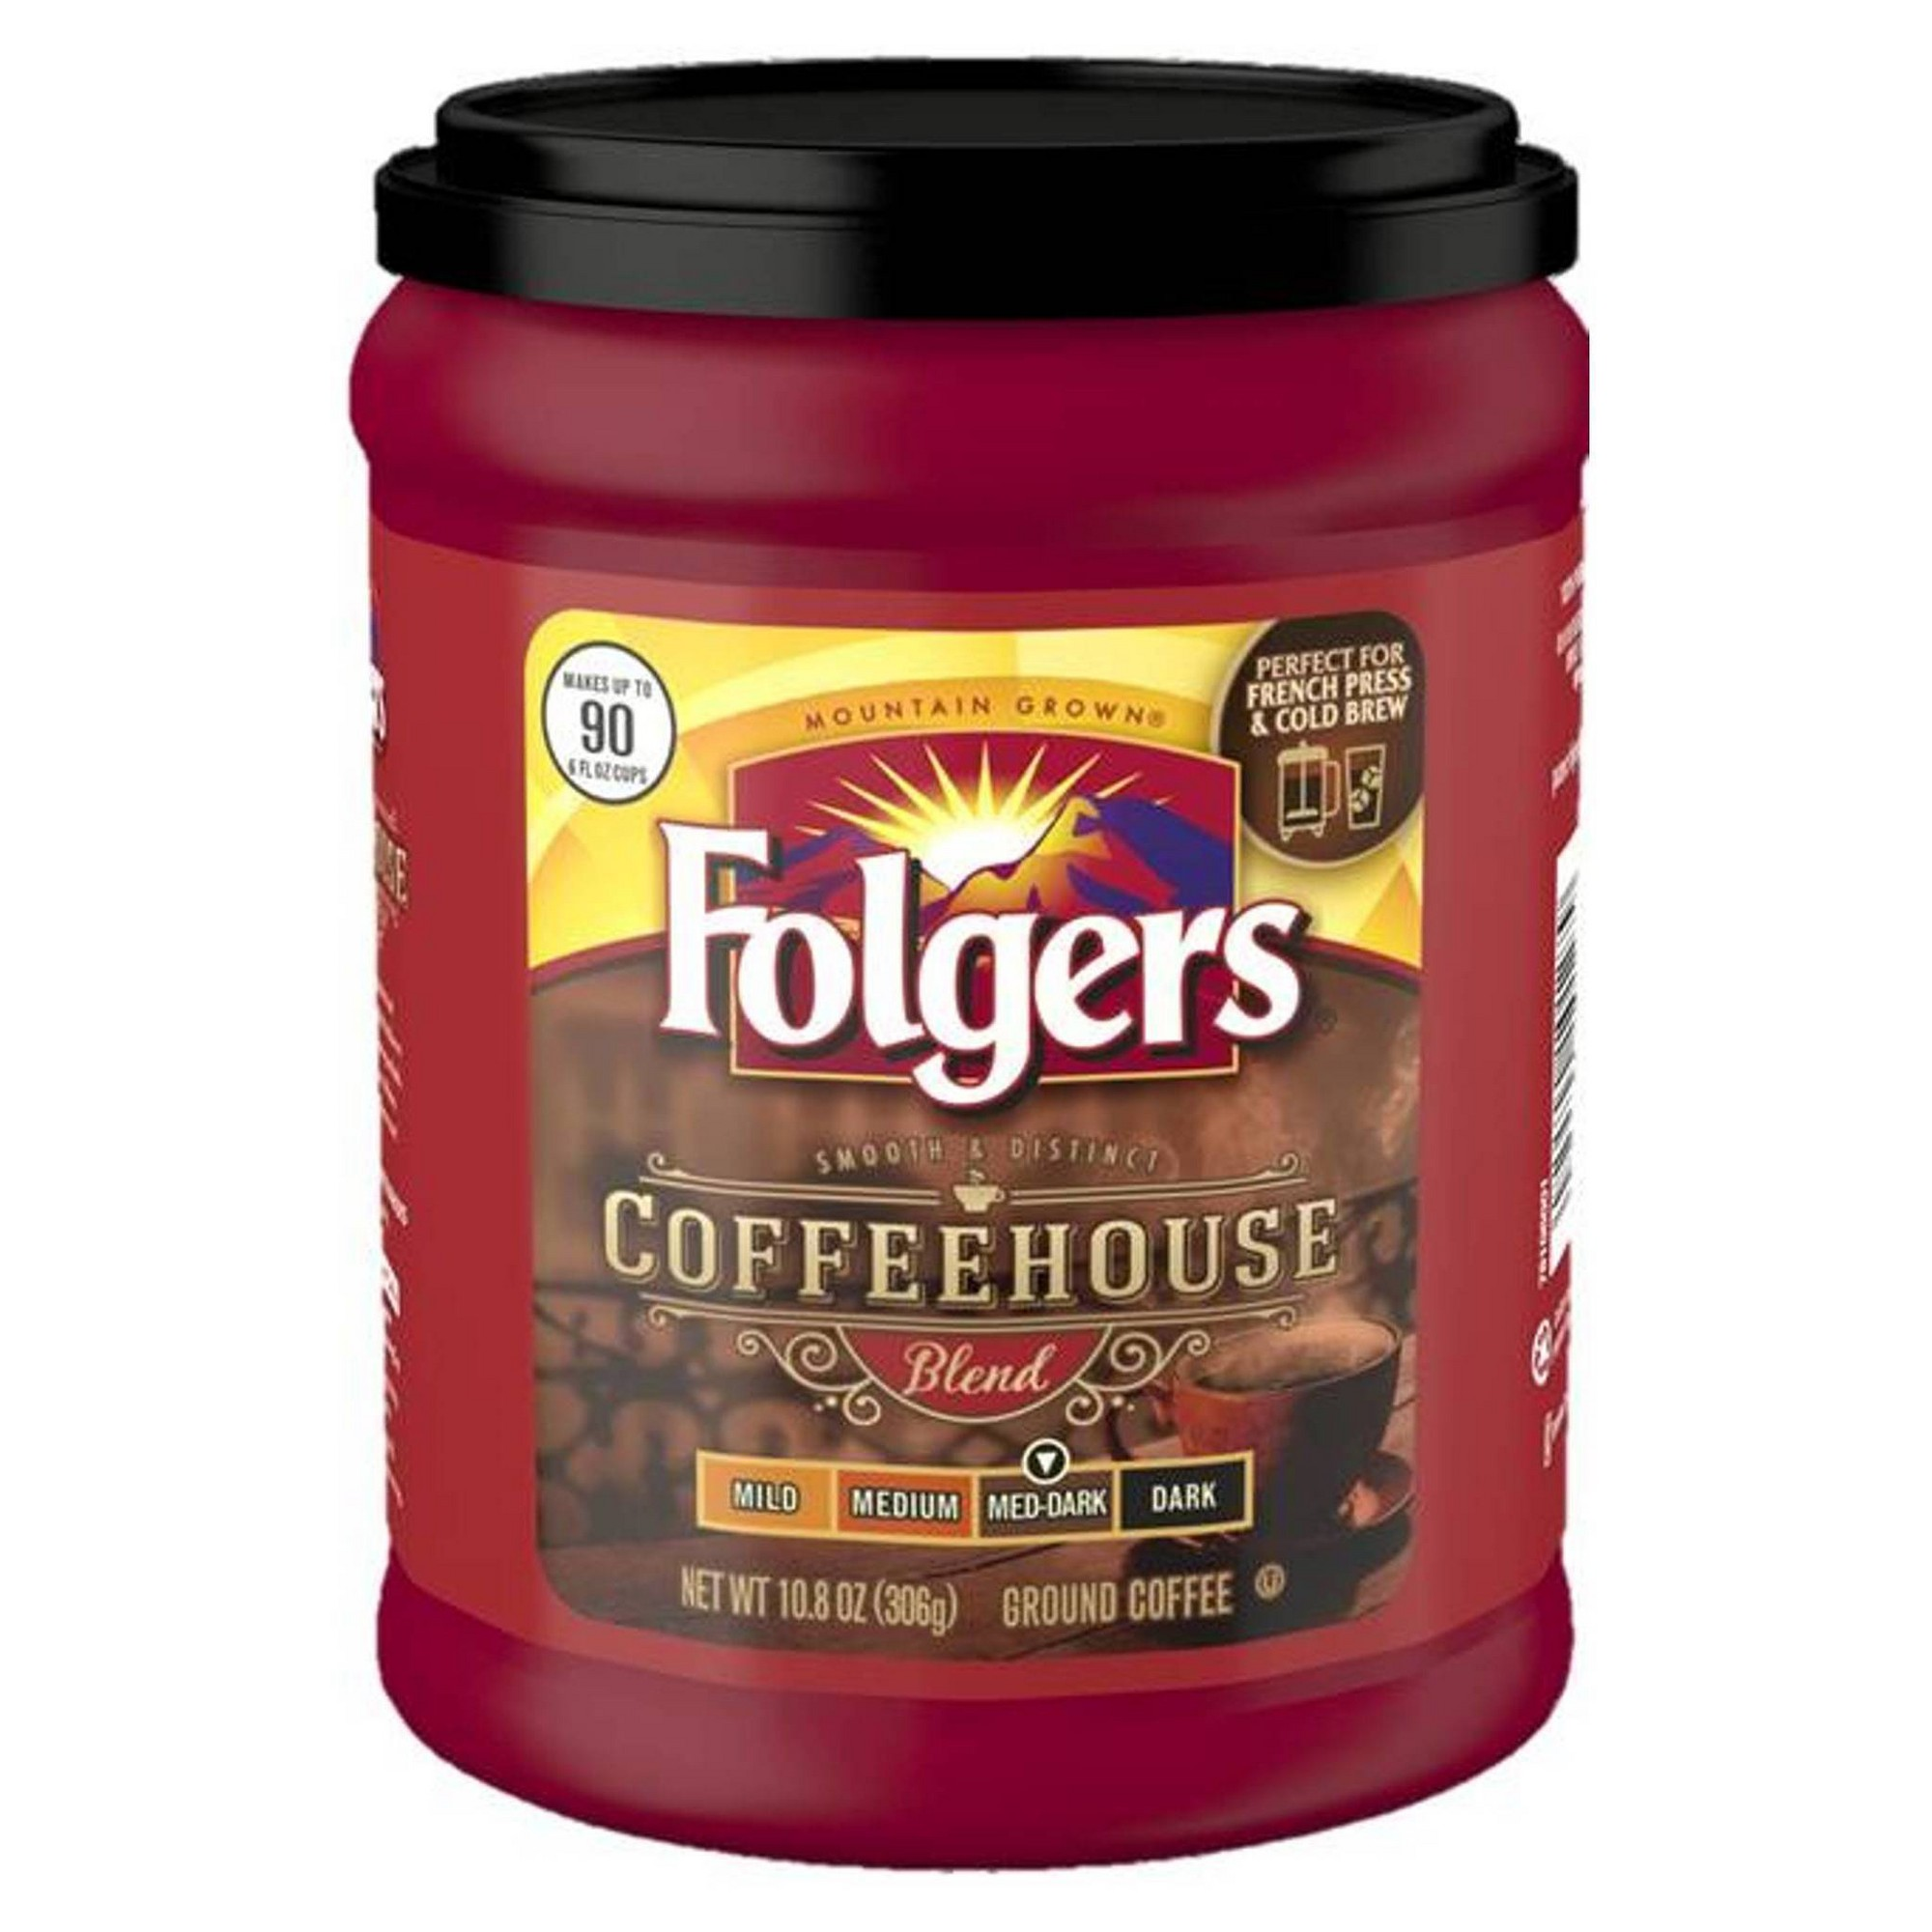 Folgers Coffee House Roast Whole Bean Coffee 12oz